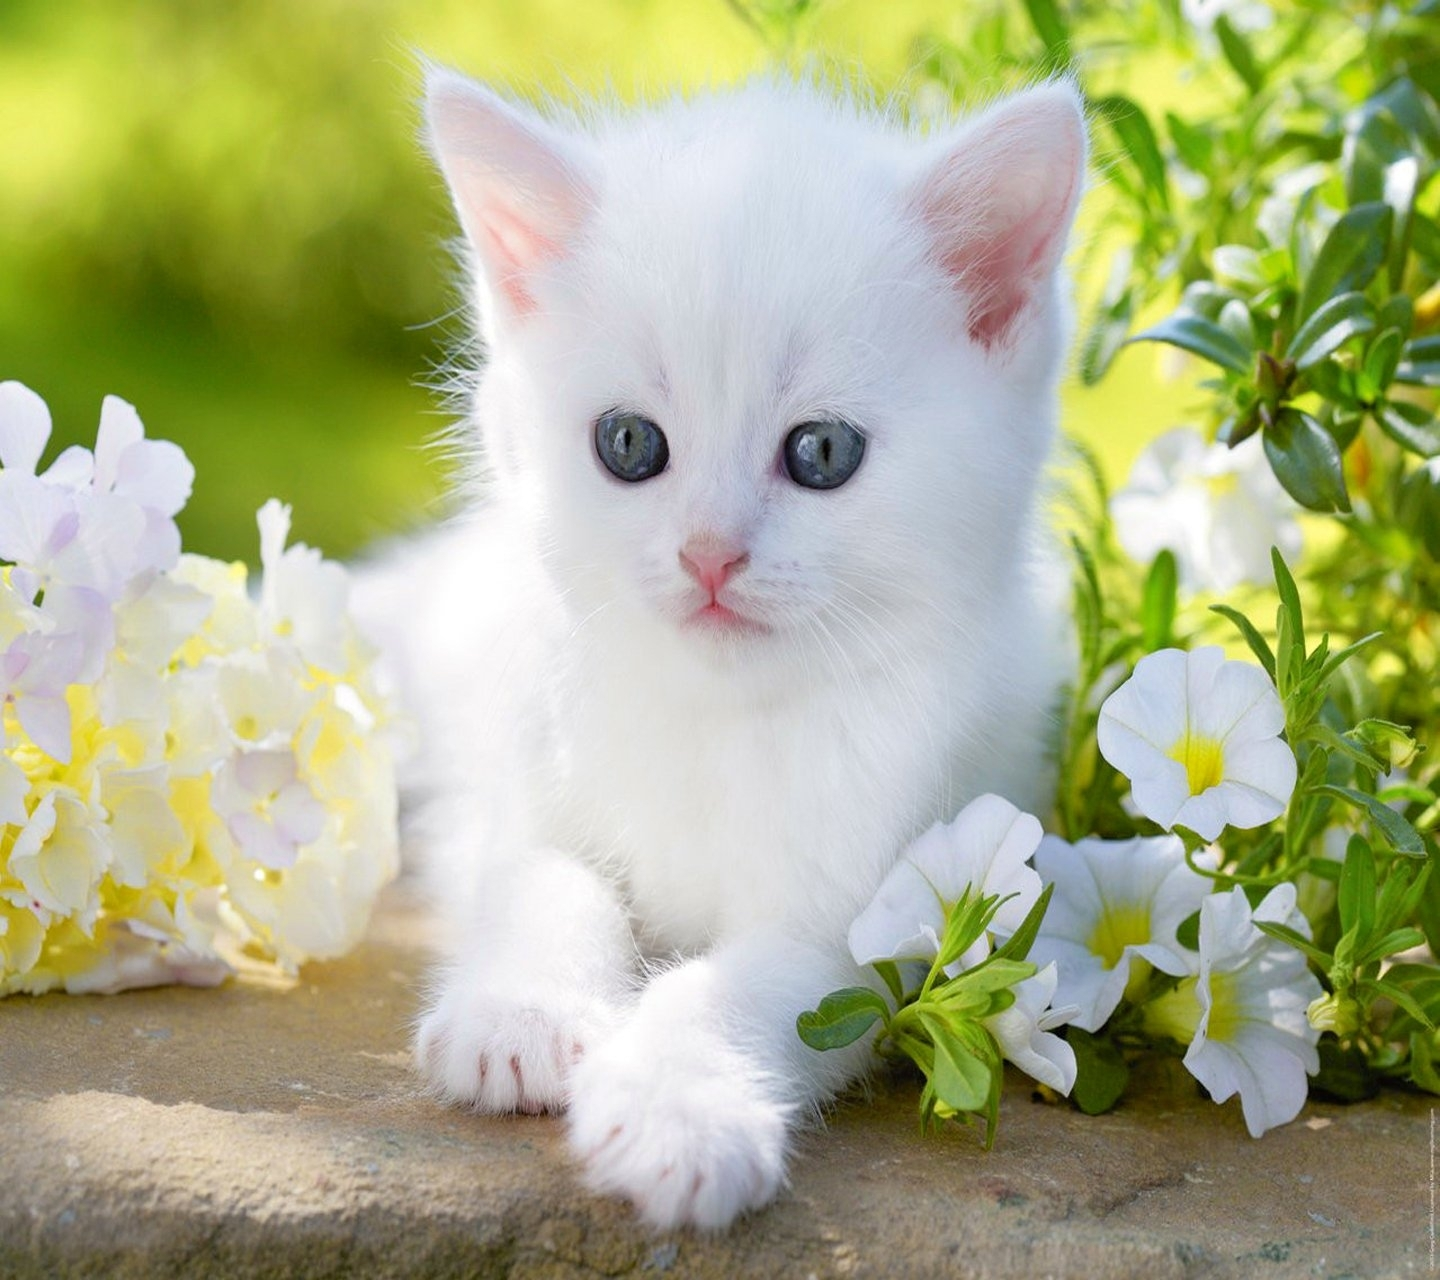 cute white cat - album on imgur